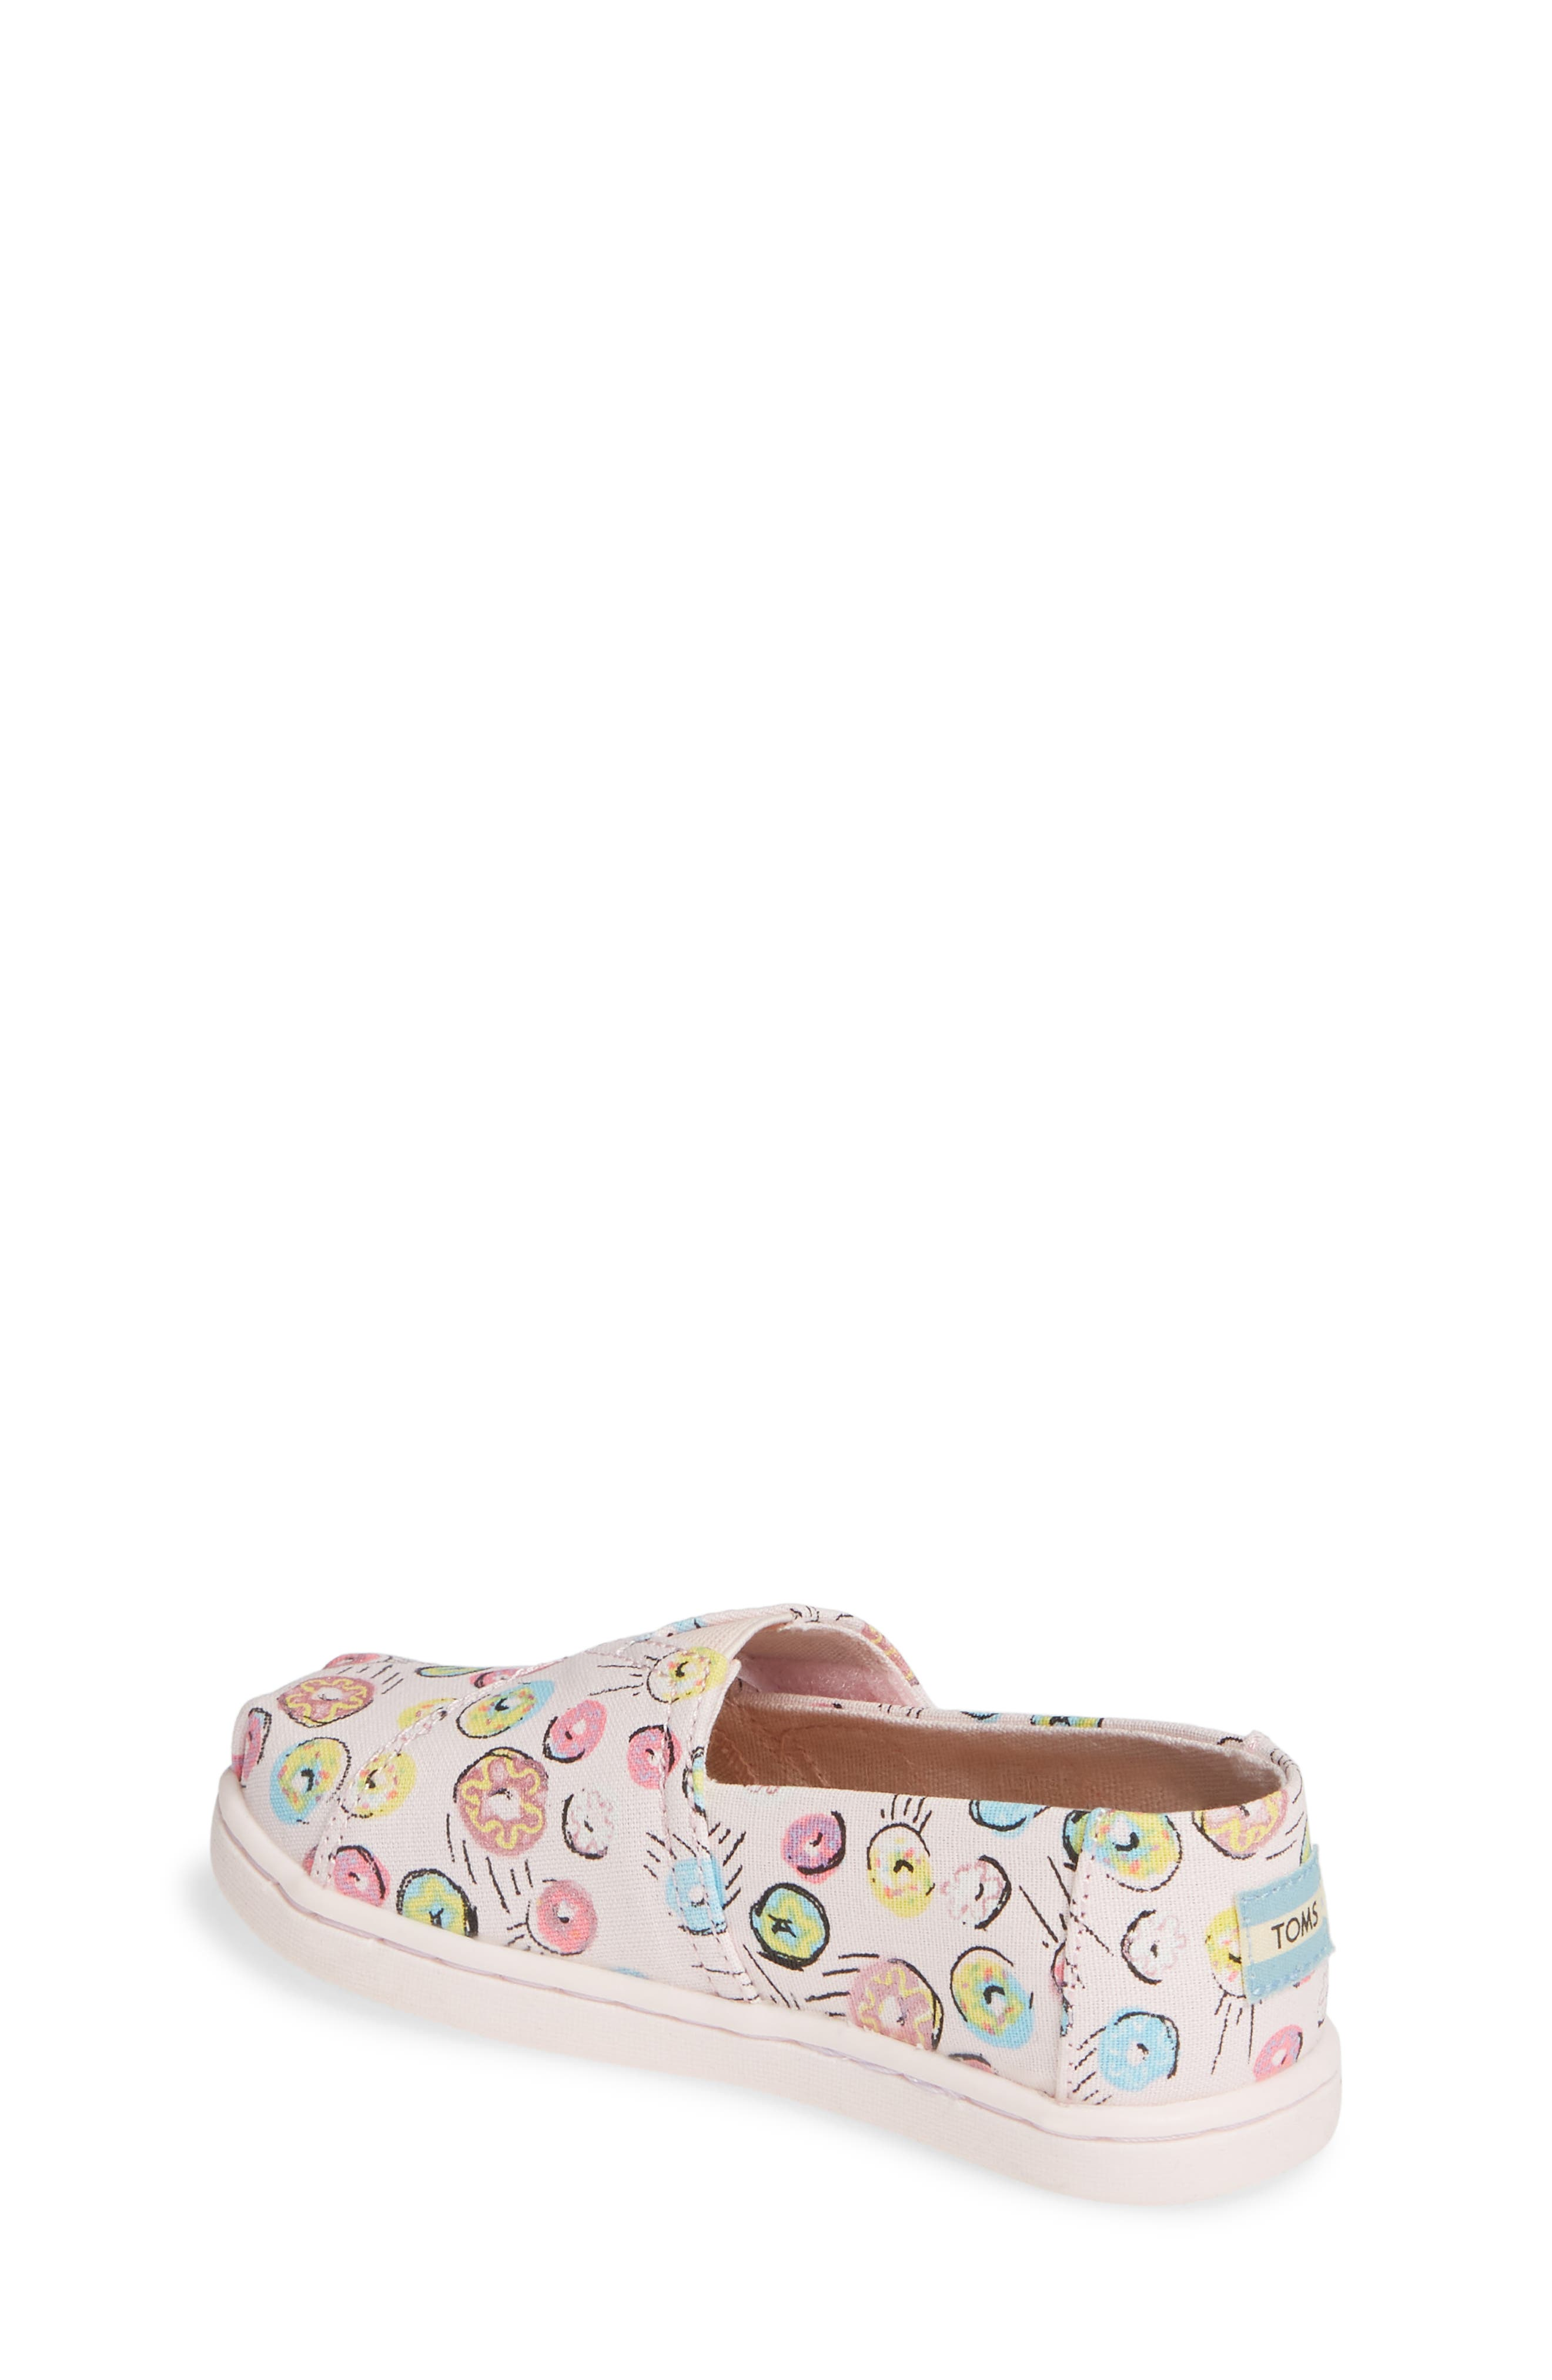 9c885d78e23f TOMS for Kids